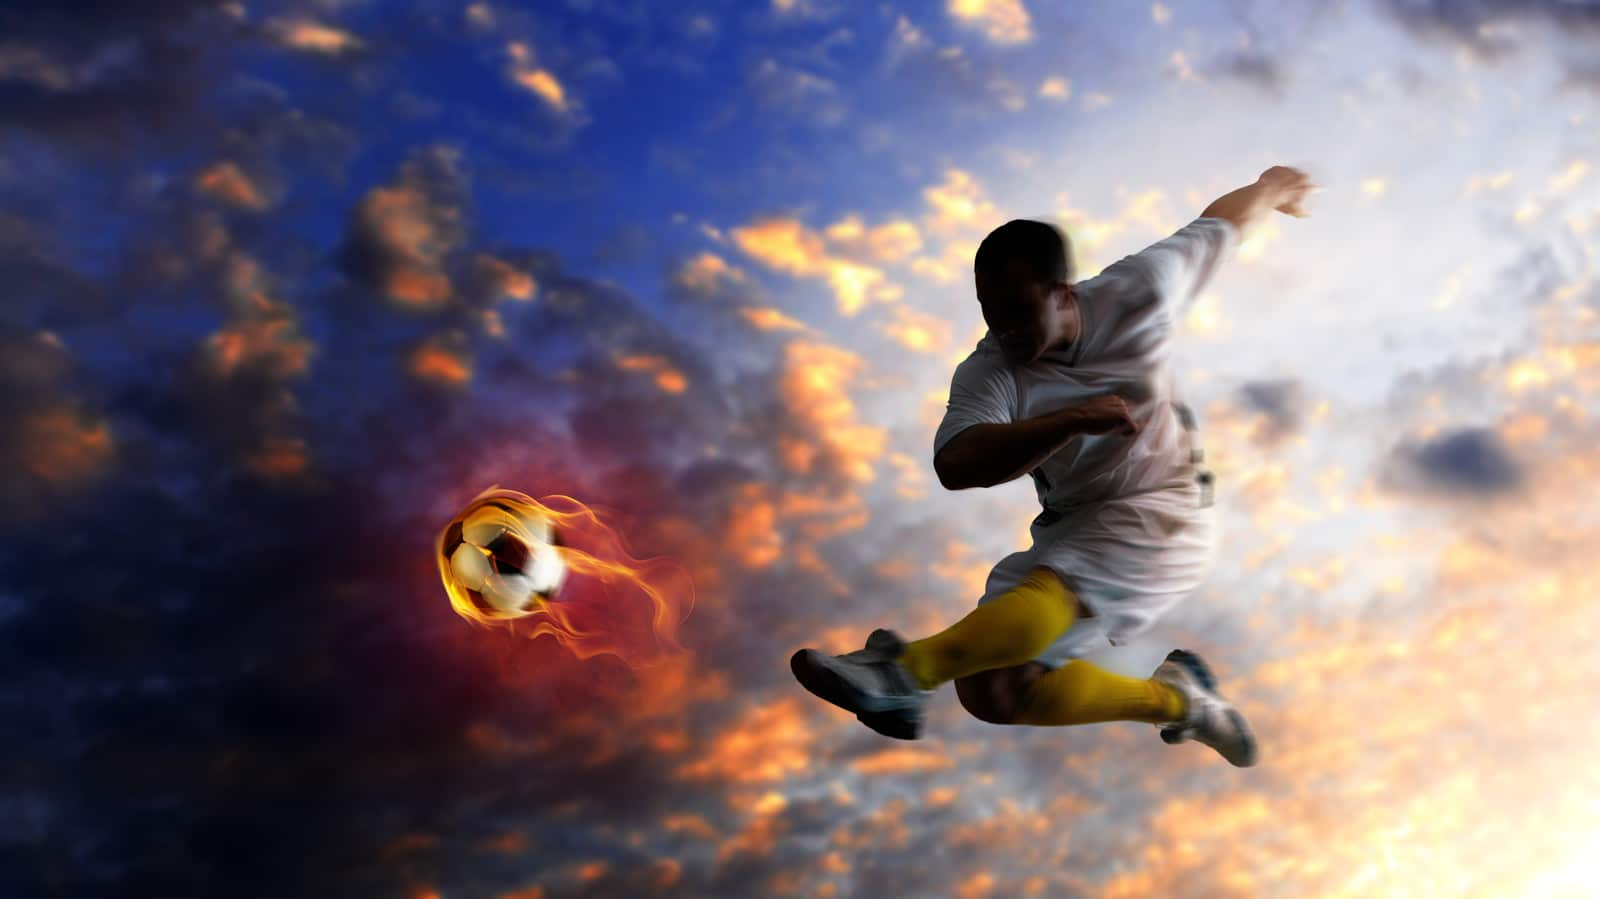 Young soccer player kicking a flaming football